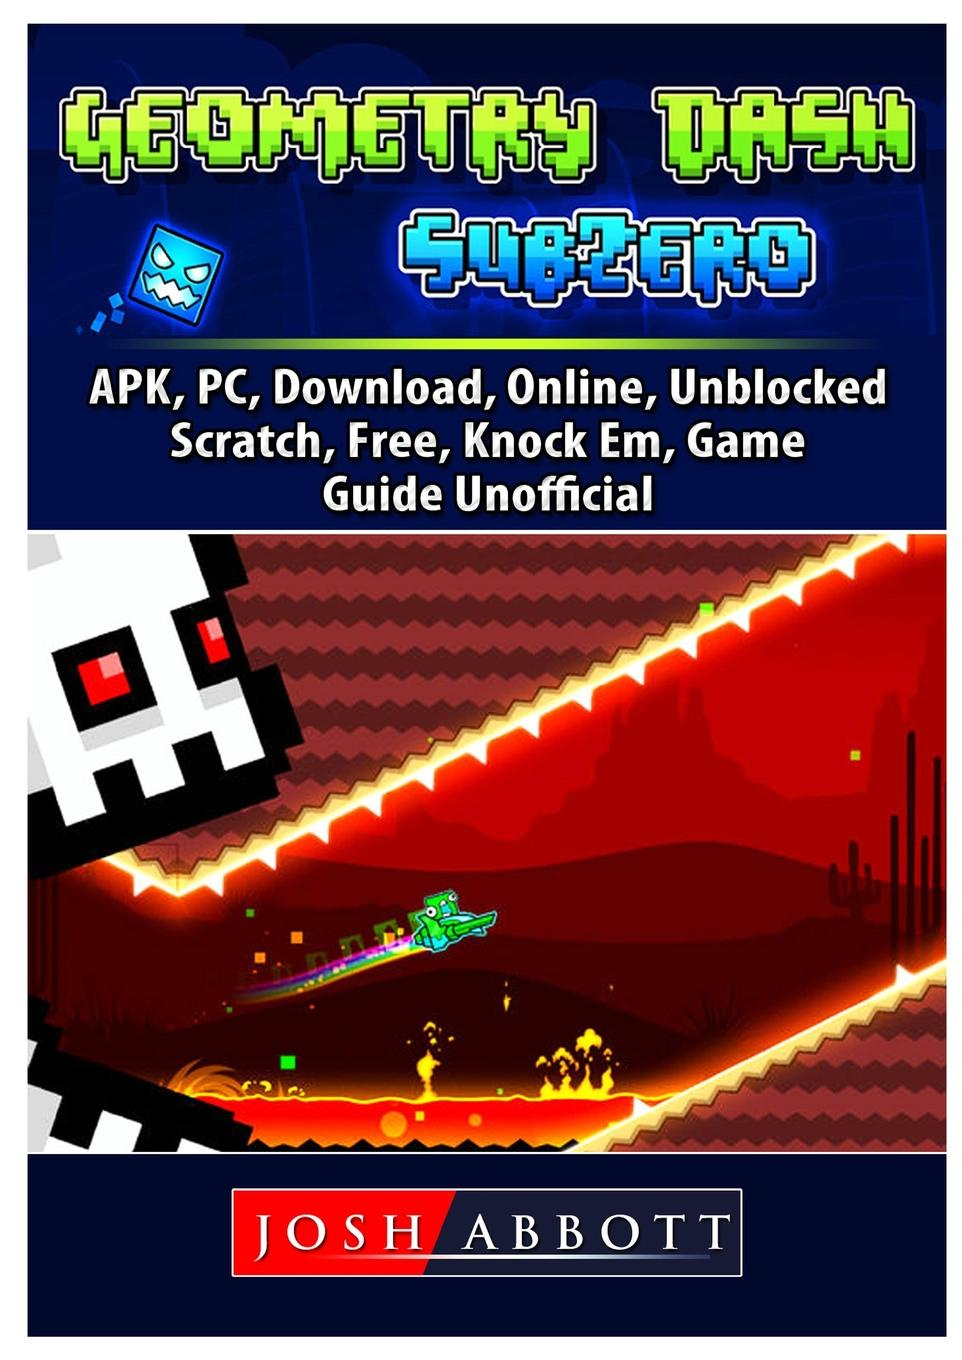 Josh Abbott. Geometry Dash Sub Zero, APK, PC, Download, Online, Unblocked, Scratch, Free, Knock Em, Game Guide Unofficial